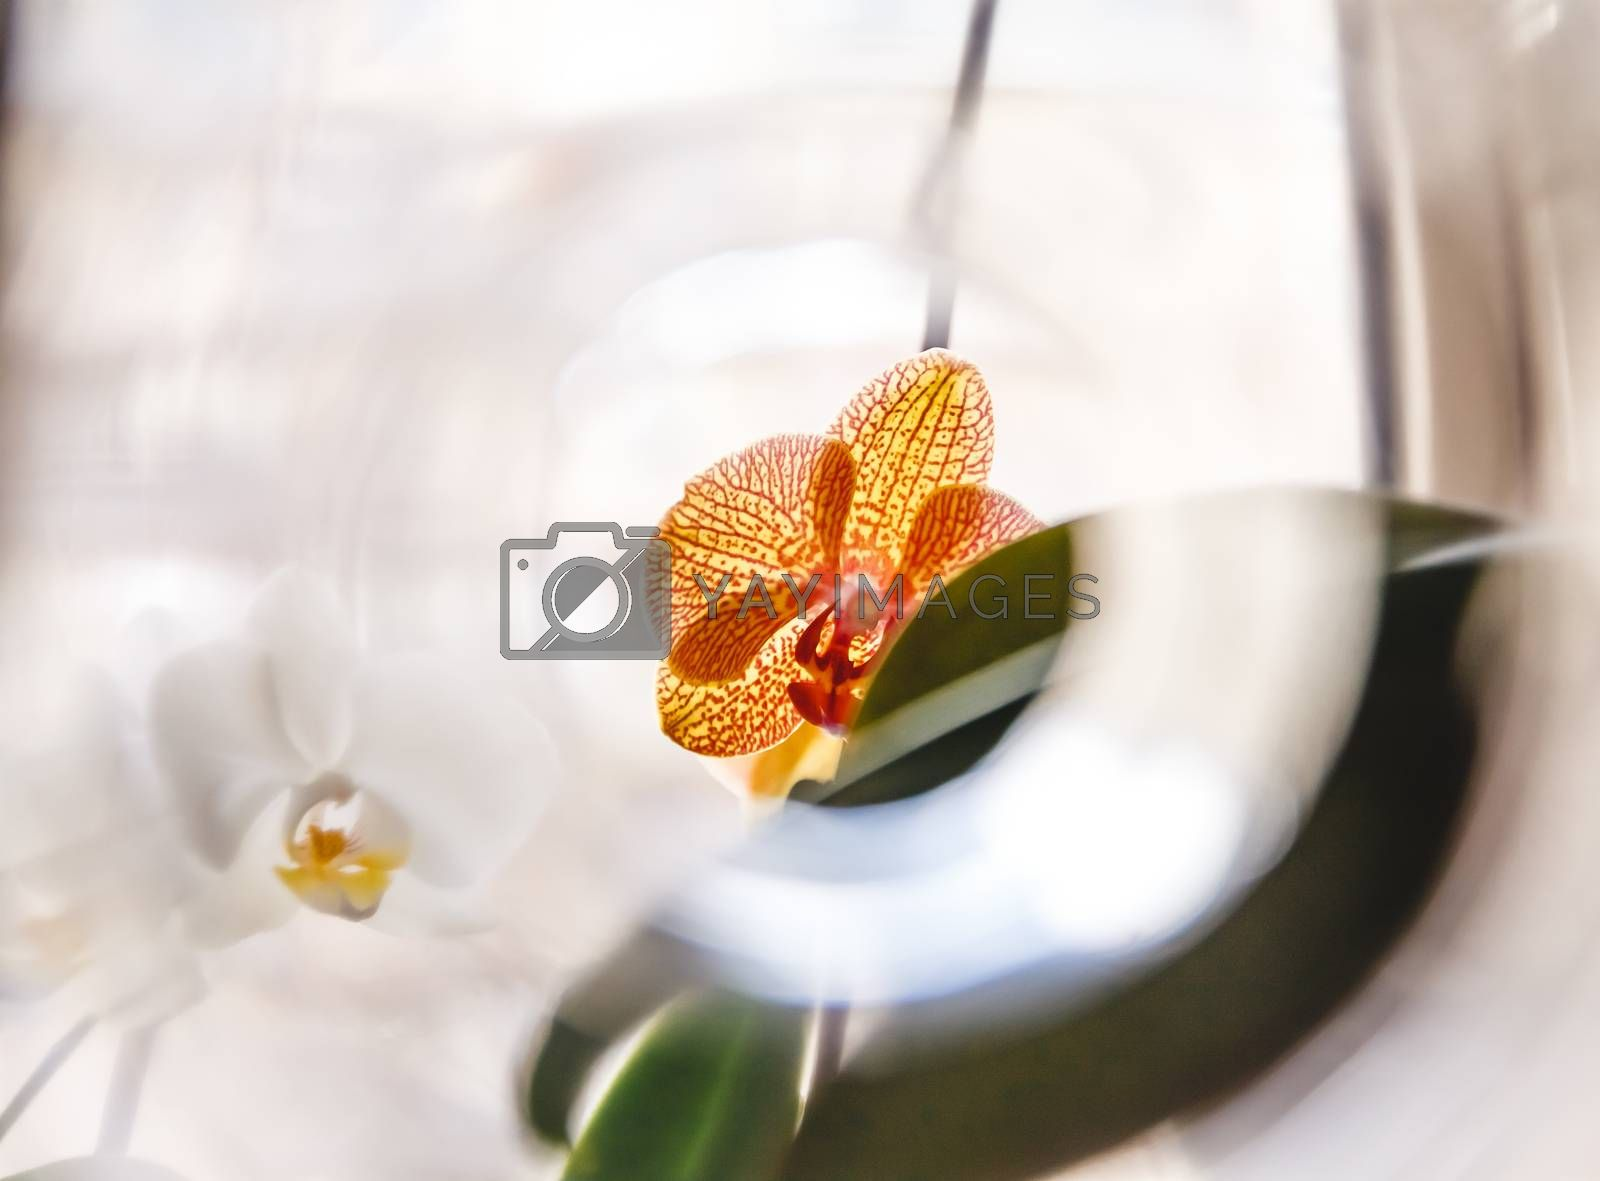 White and orange tiger orchid flower on bright background in cre by Tanacha